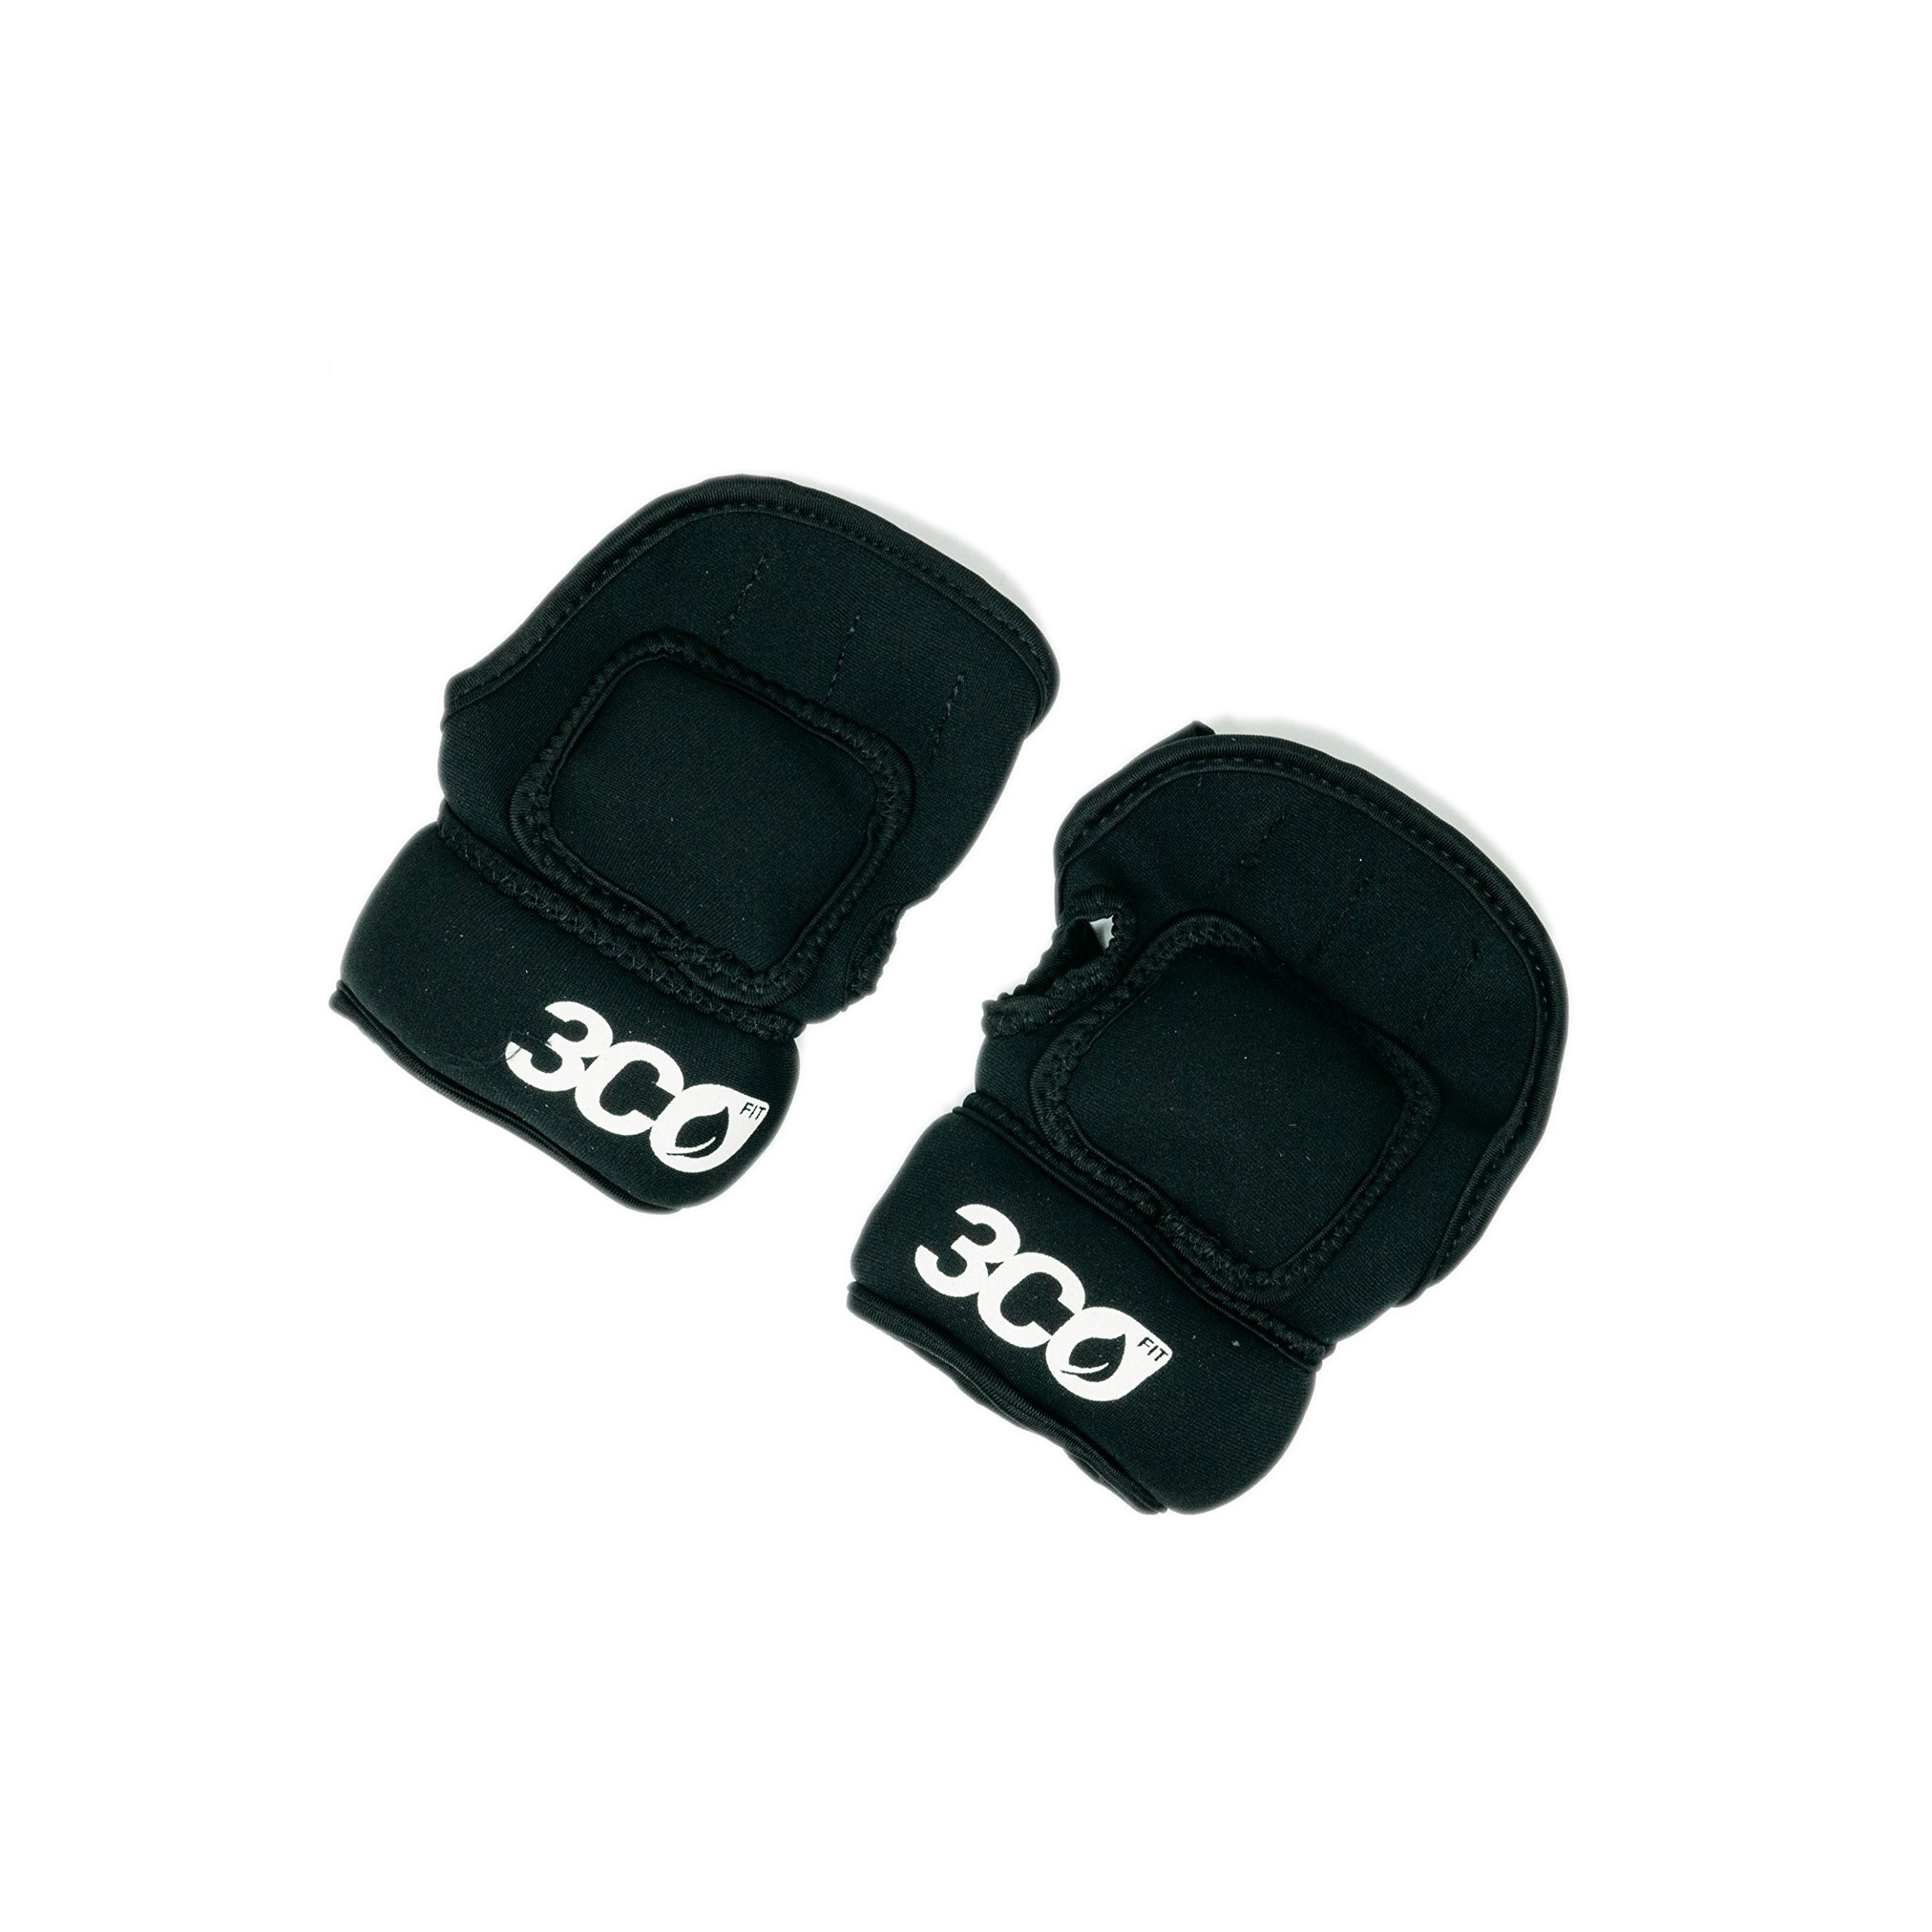 3coFit Wrist Weight Set (1 Pair) for Women, Men and Kids - Fully Adjustable Weight for Arm, Hand & Leg - Best for Walking, Jogging, Gymnastics, Aerobics by 3coFit